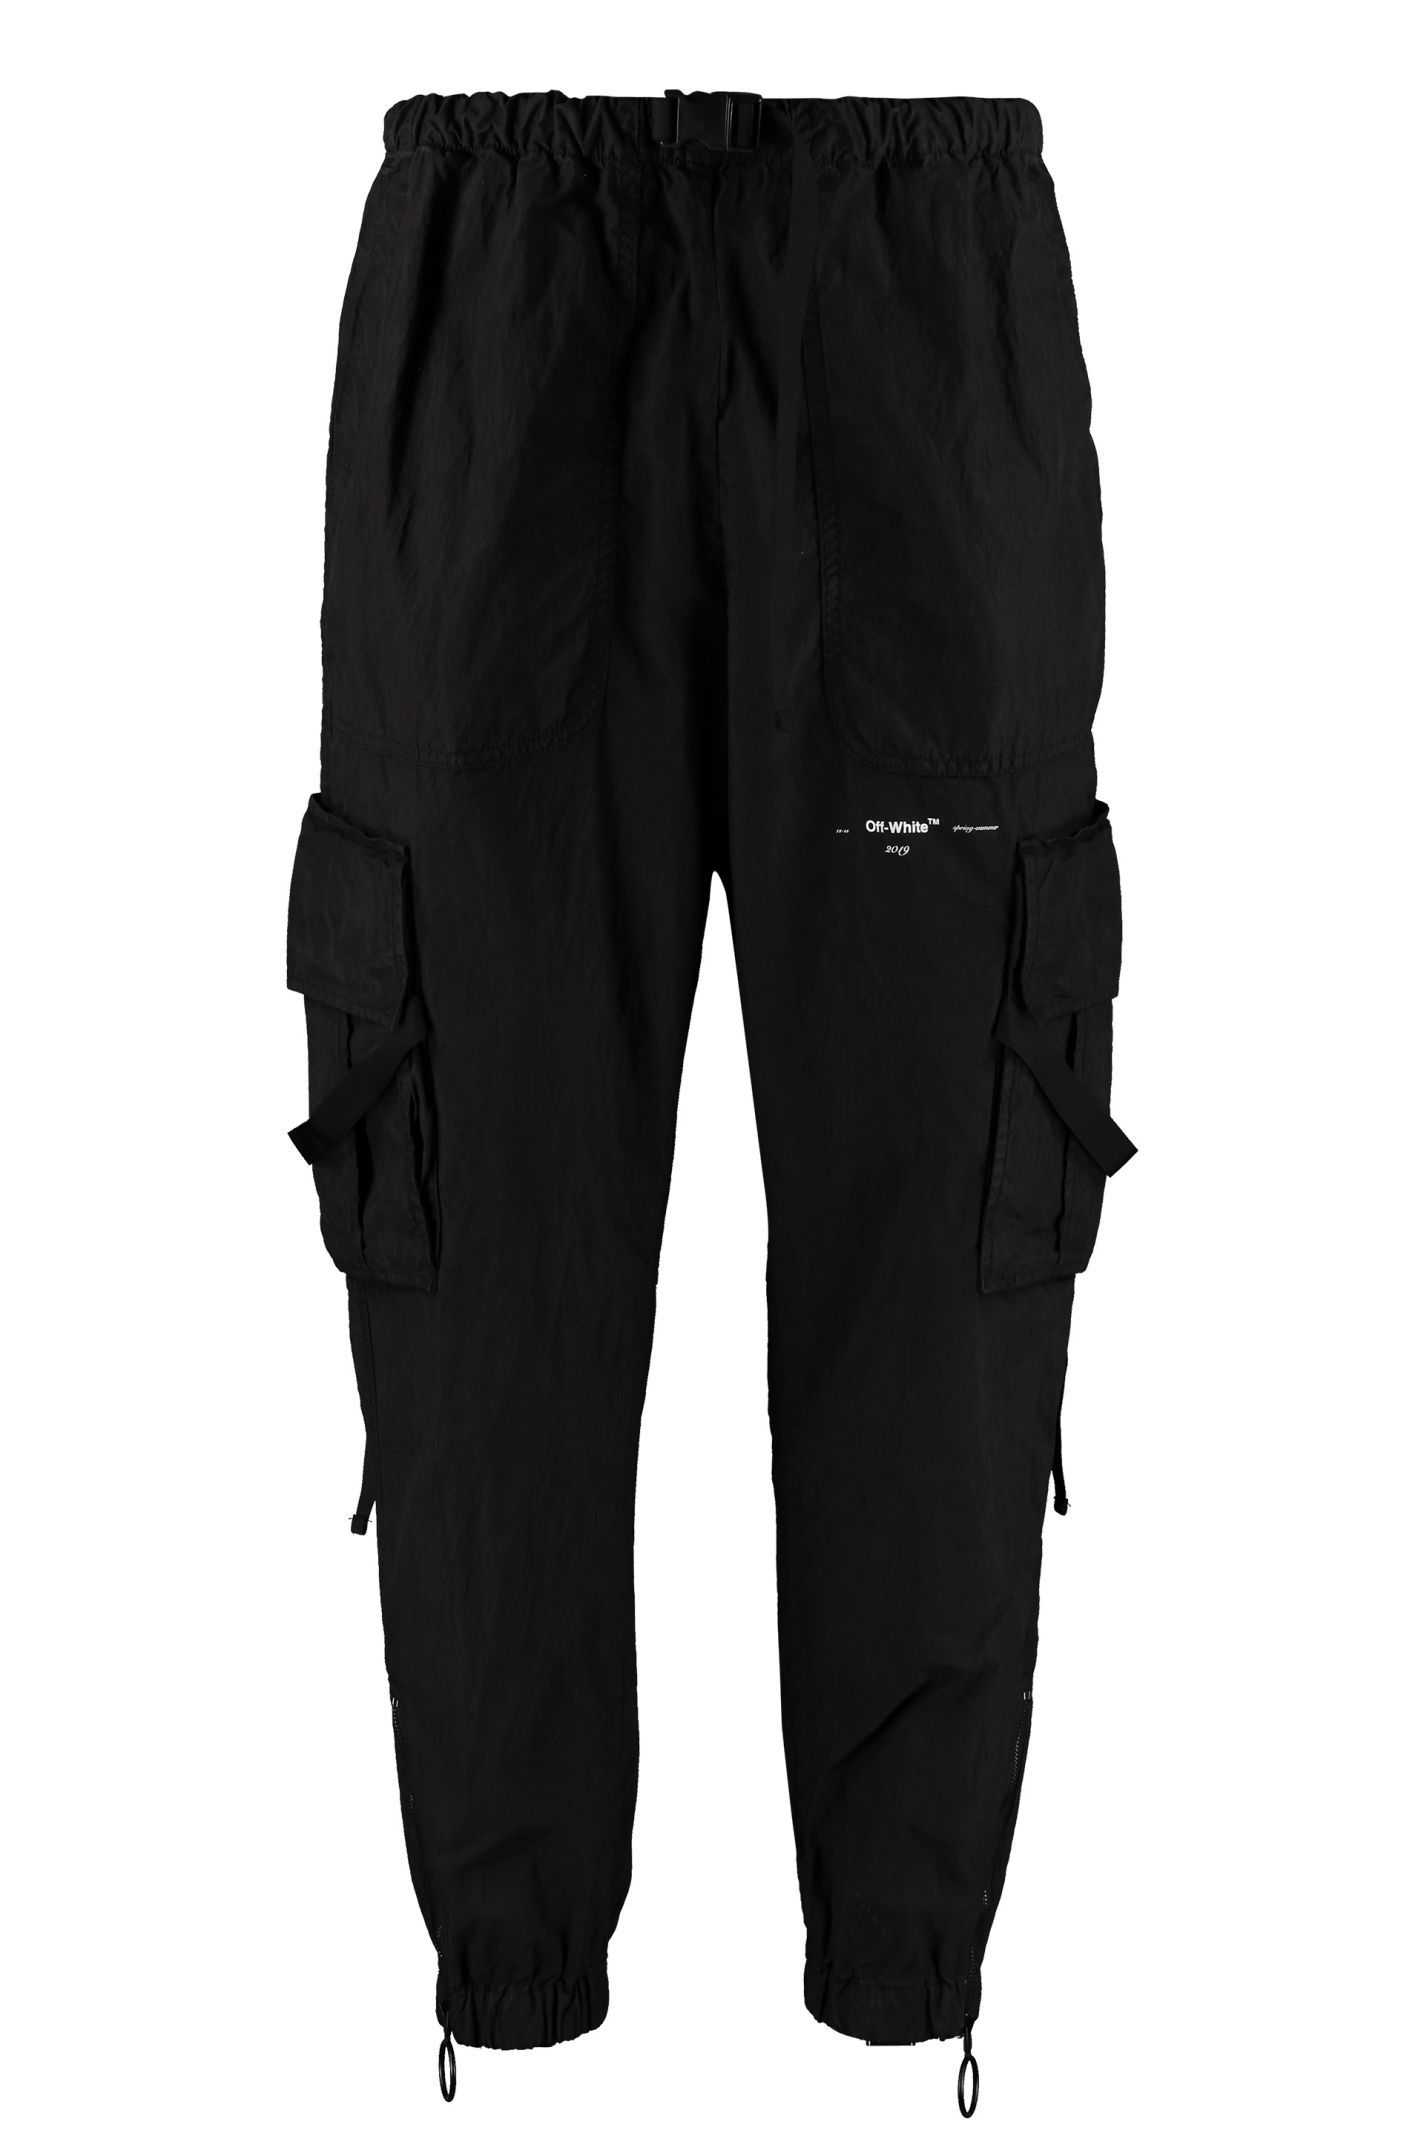 Off White Cargo Trousers Off White Cloth Cargo Trousers Mens Pants Fashion Fashion Outfits [ 2136 x 1424 Pixel ]